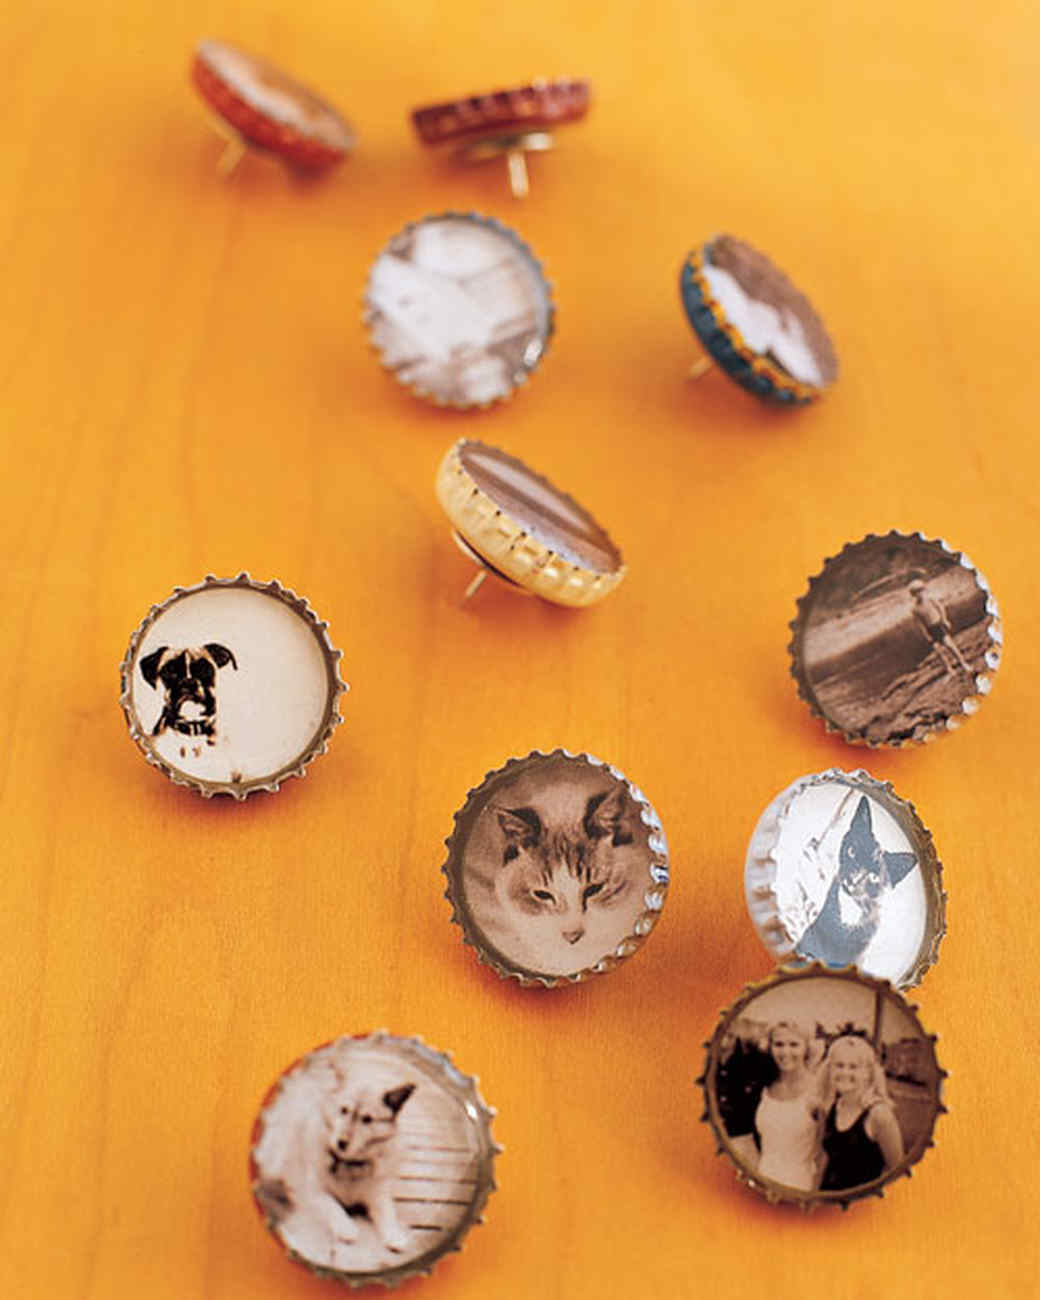 Bottle Cap Magnet Tutorial from Martha Stewart | Photo by James Merrell